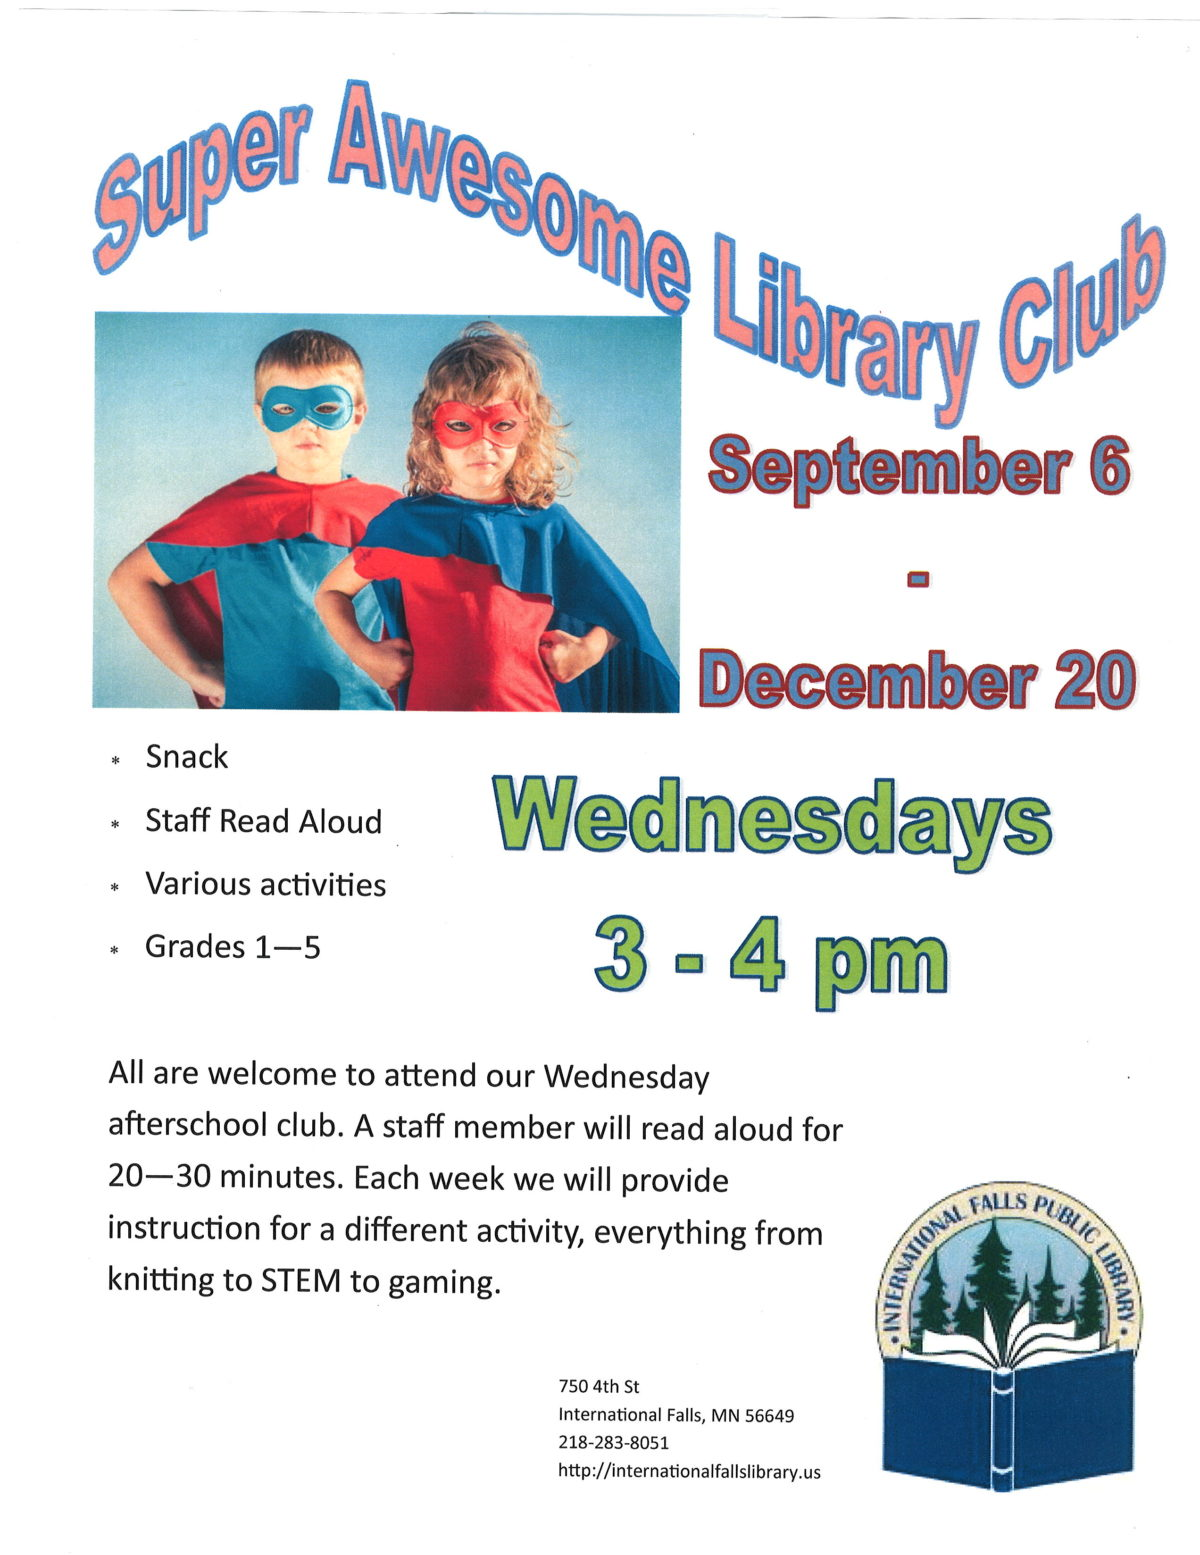 Super Awesome Library Club